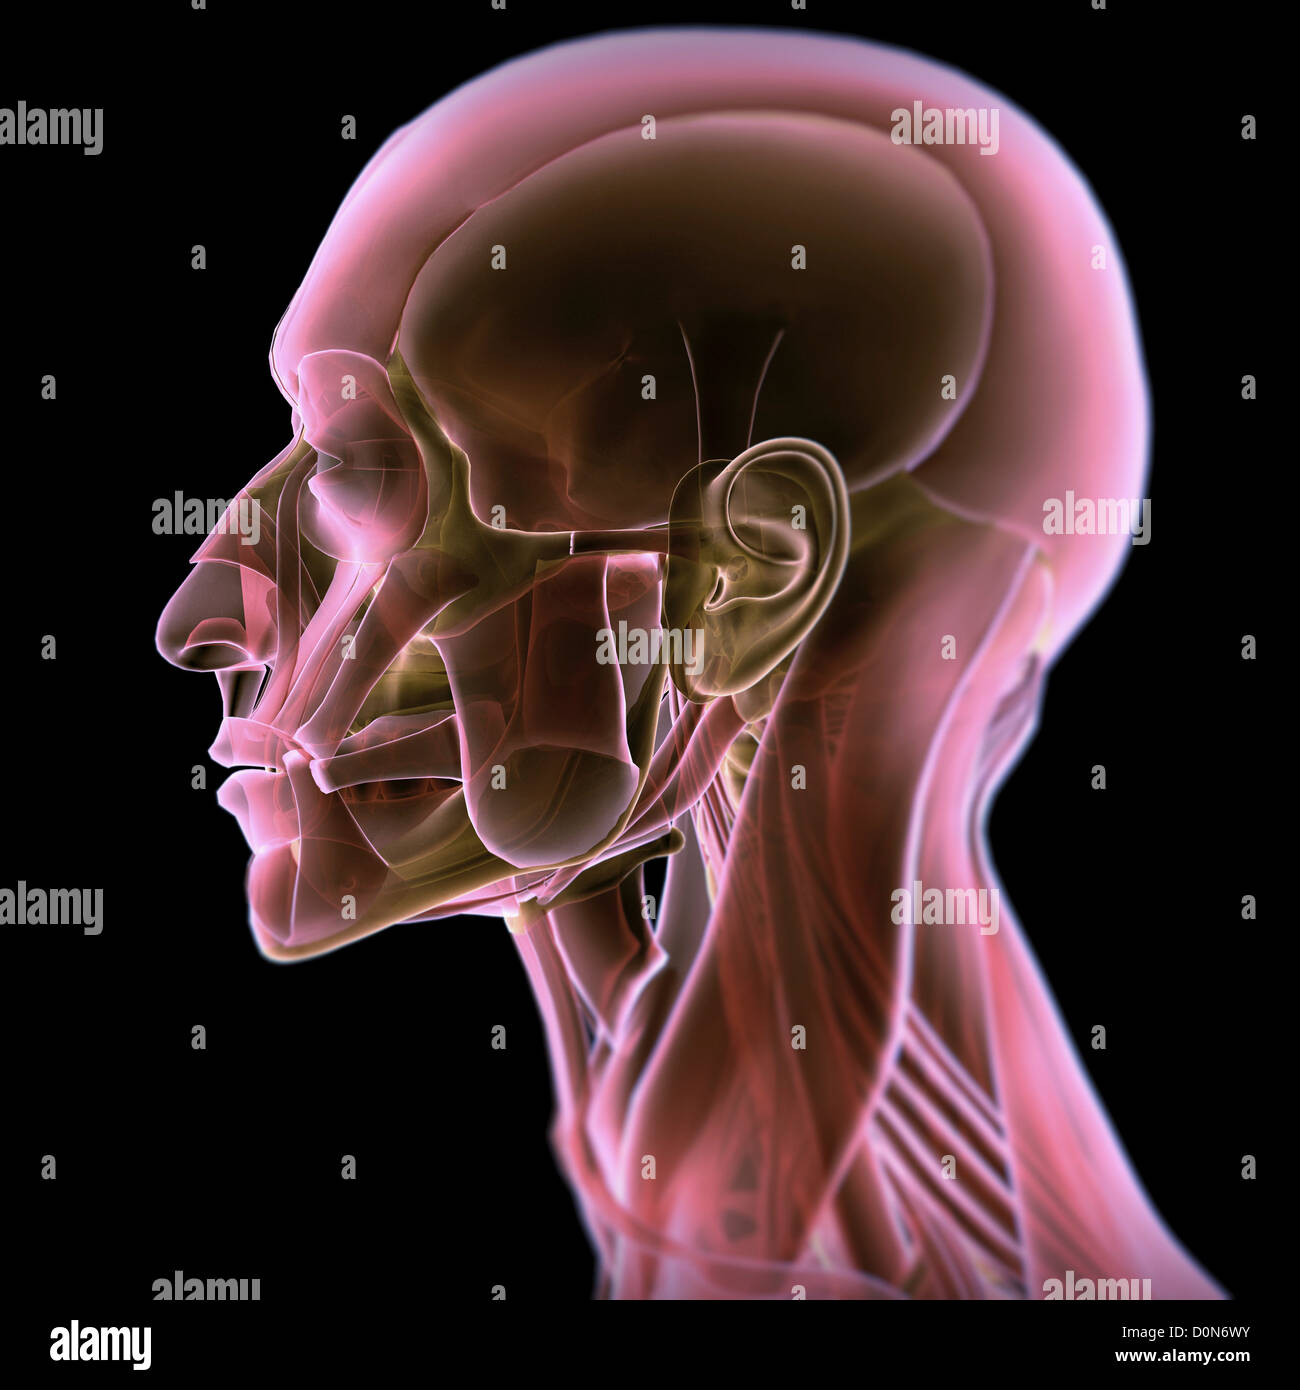 Side view of the anatomy of the head. Stock Photo